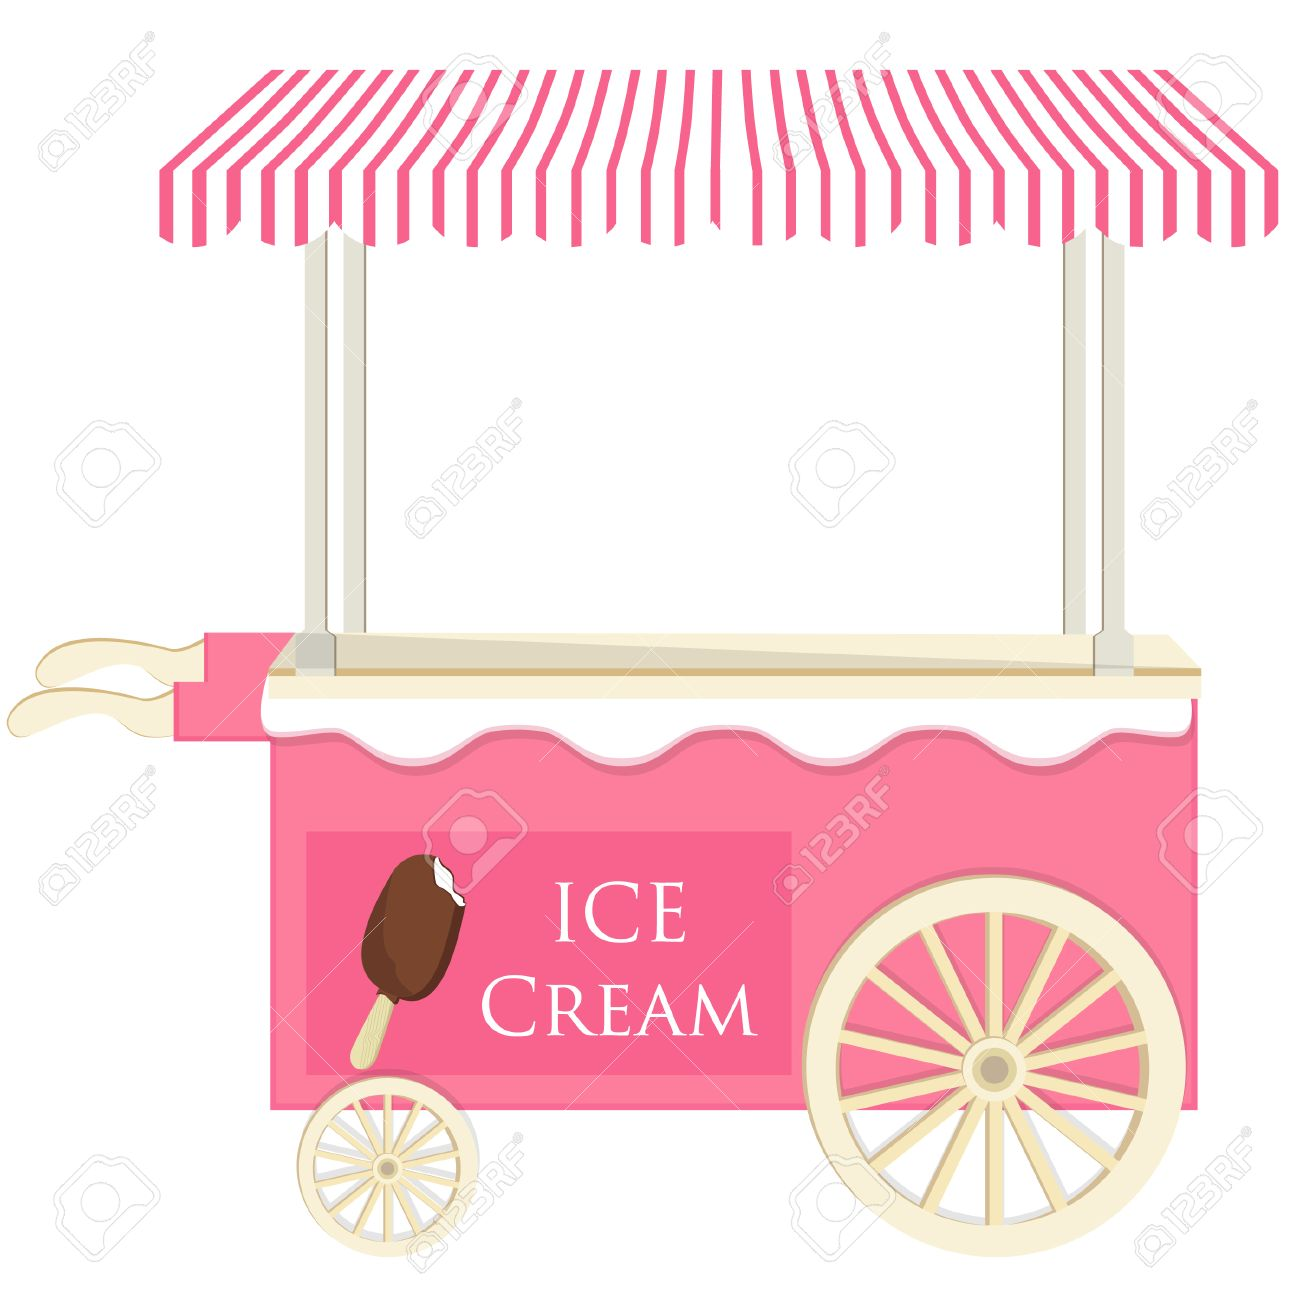 Ice cream pink cart vector icon isolated, ice cream stand, ice...